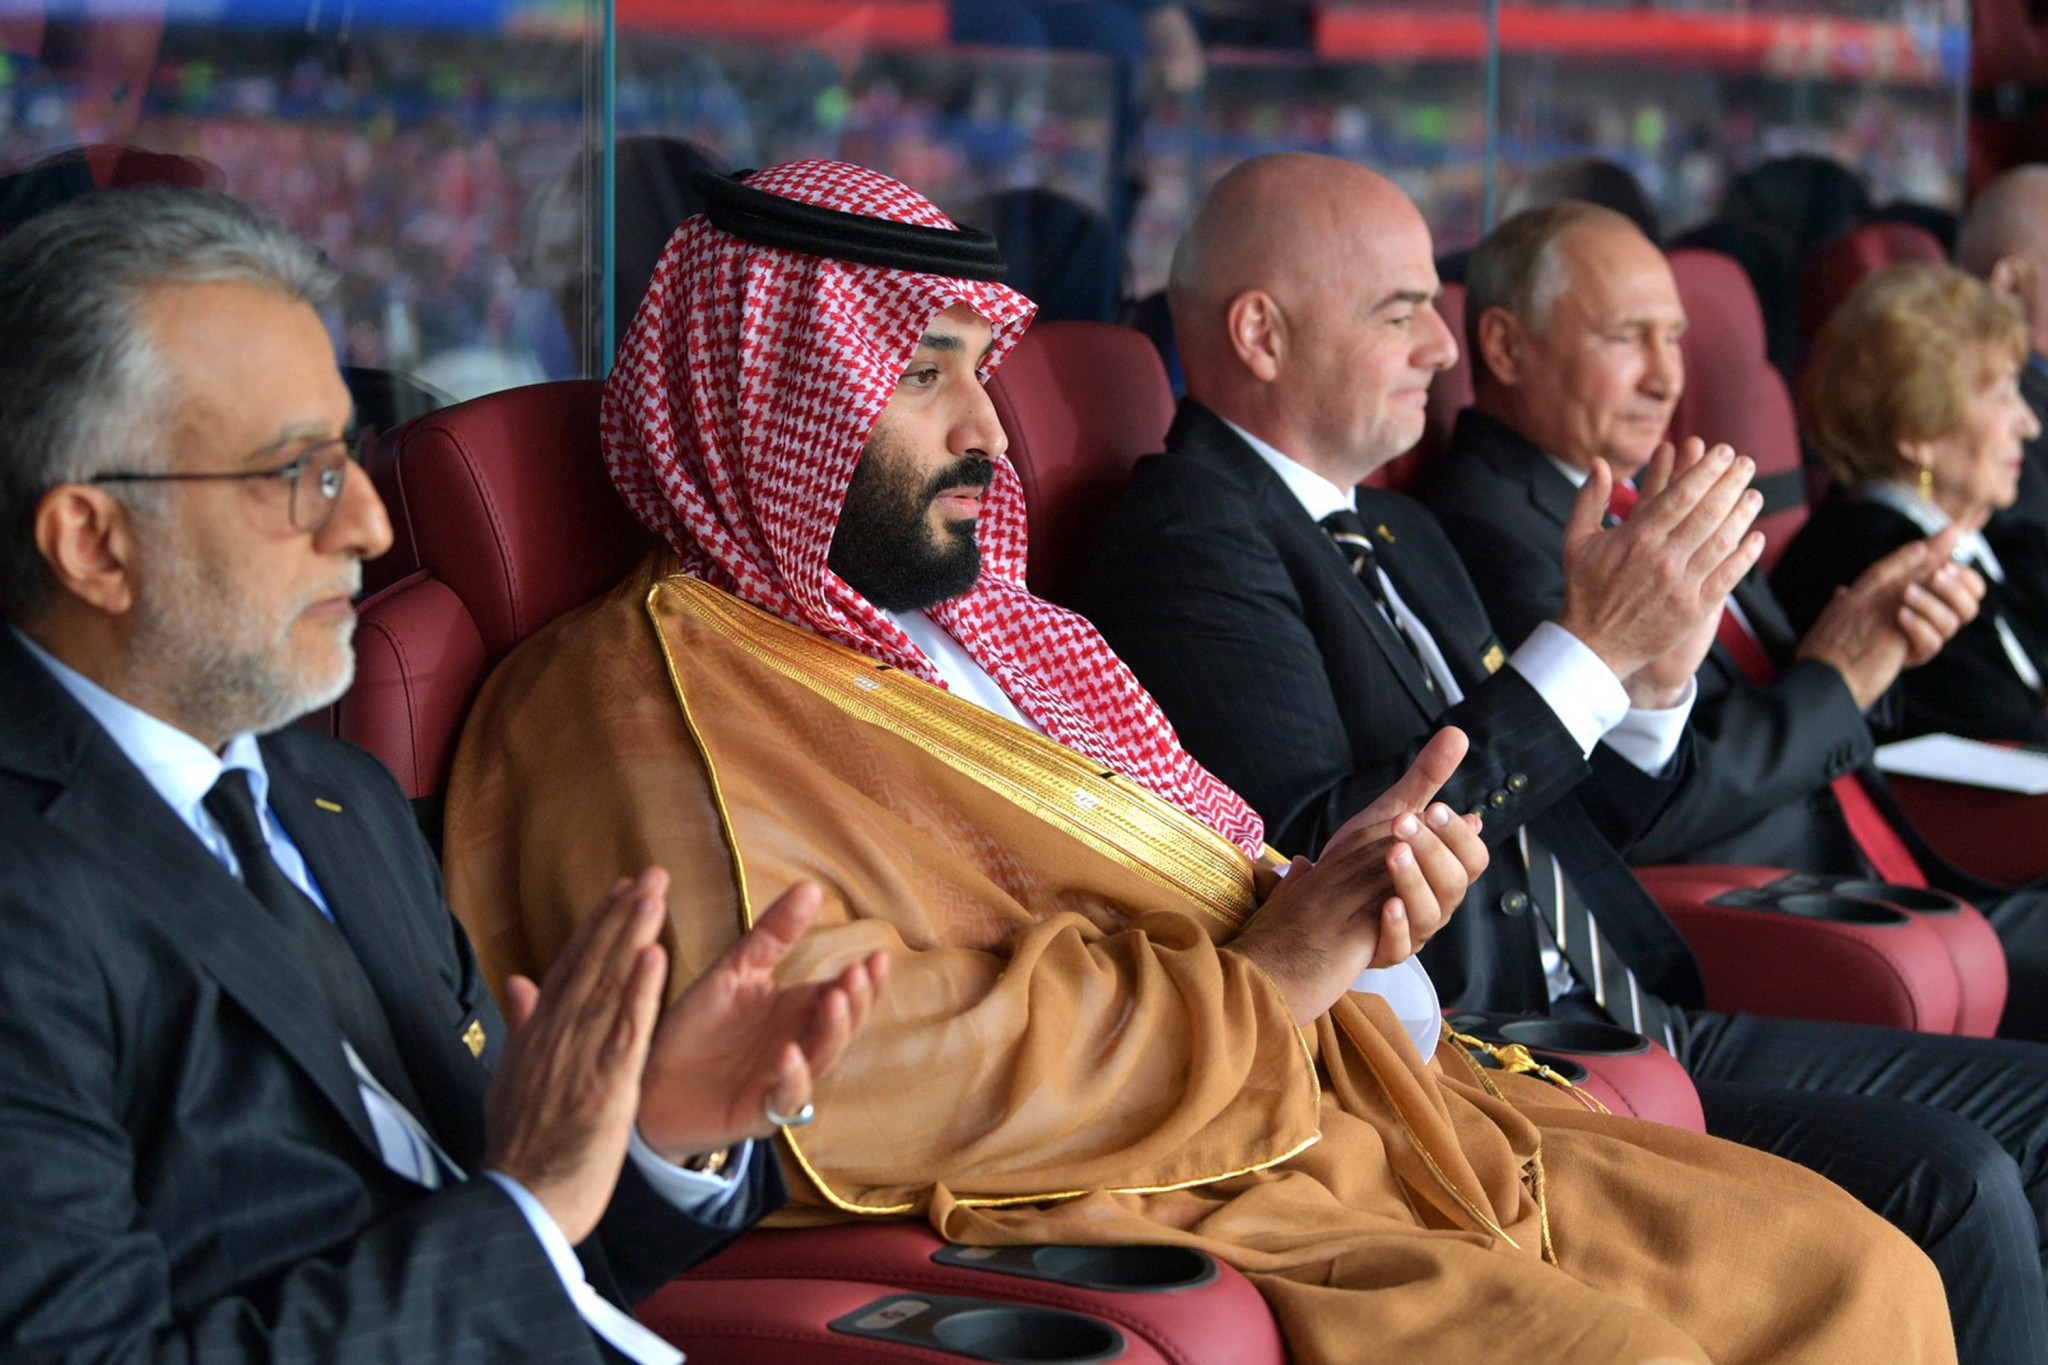 Sheikh Salman bin Ebrahim Al Khalifa, left, claims that 40 of the 47 countries who are members of the Asian Football Confederation have already pledged their support to him to be re-elected as President ©Getty Images